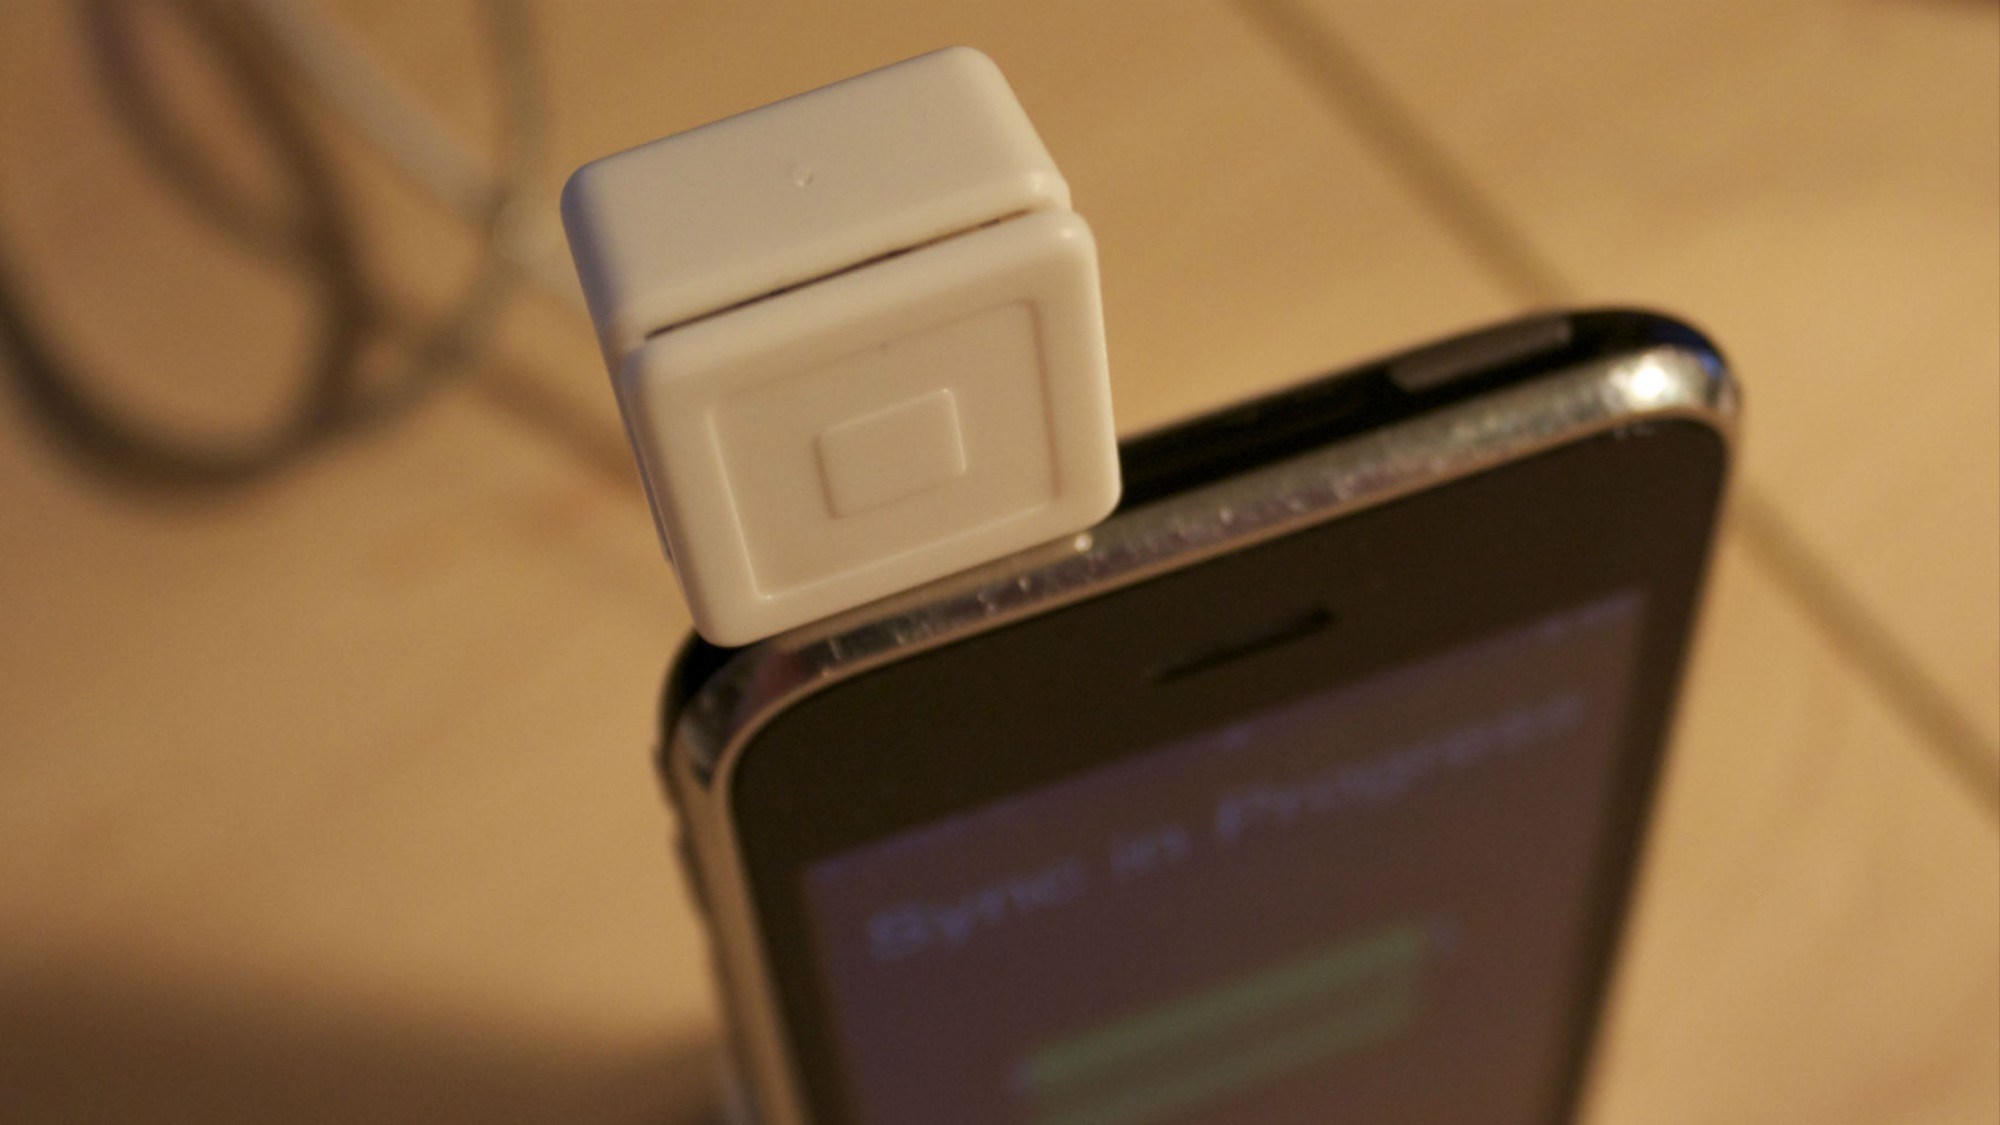 Researchers Turn Square Reader Into Credit Card Skimmer in